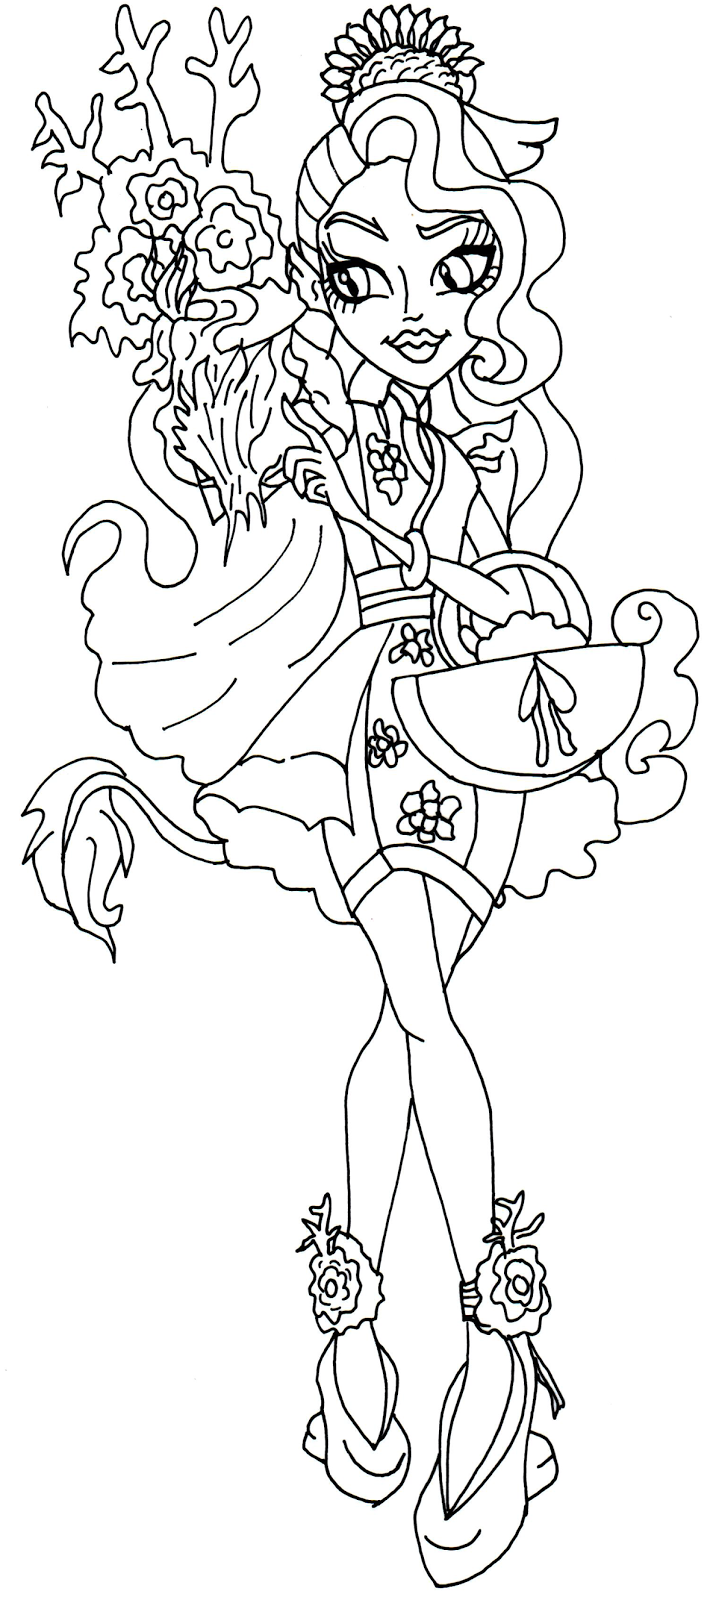 easy monster high coloring pages - photo#36